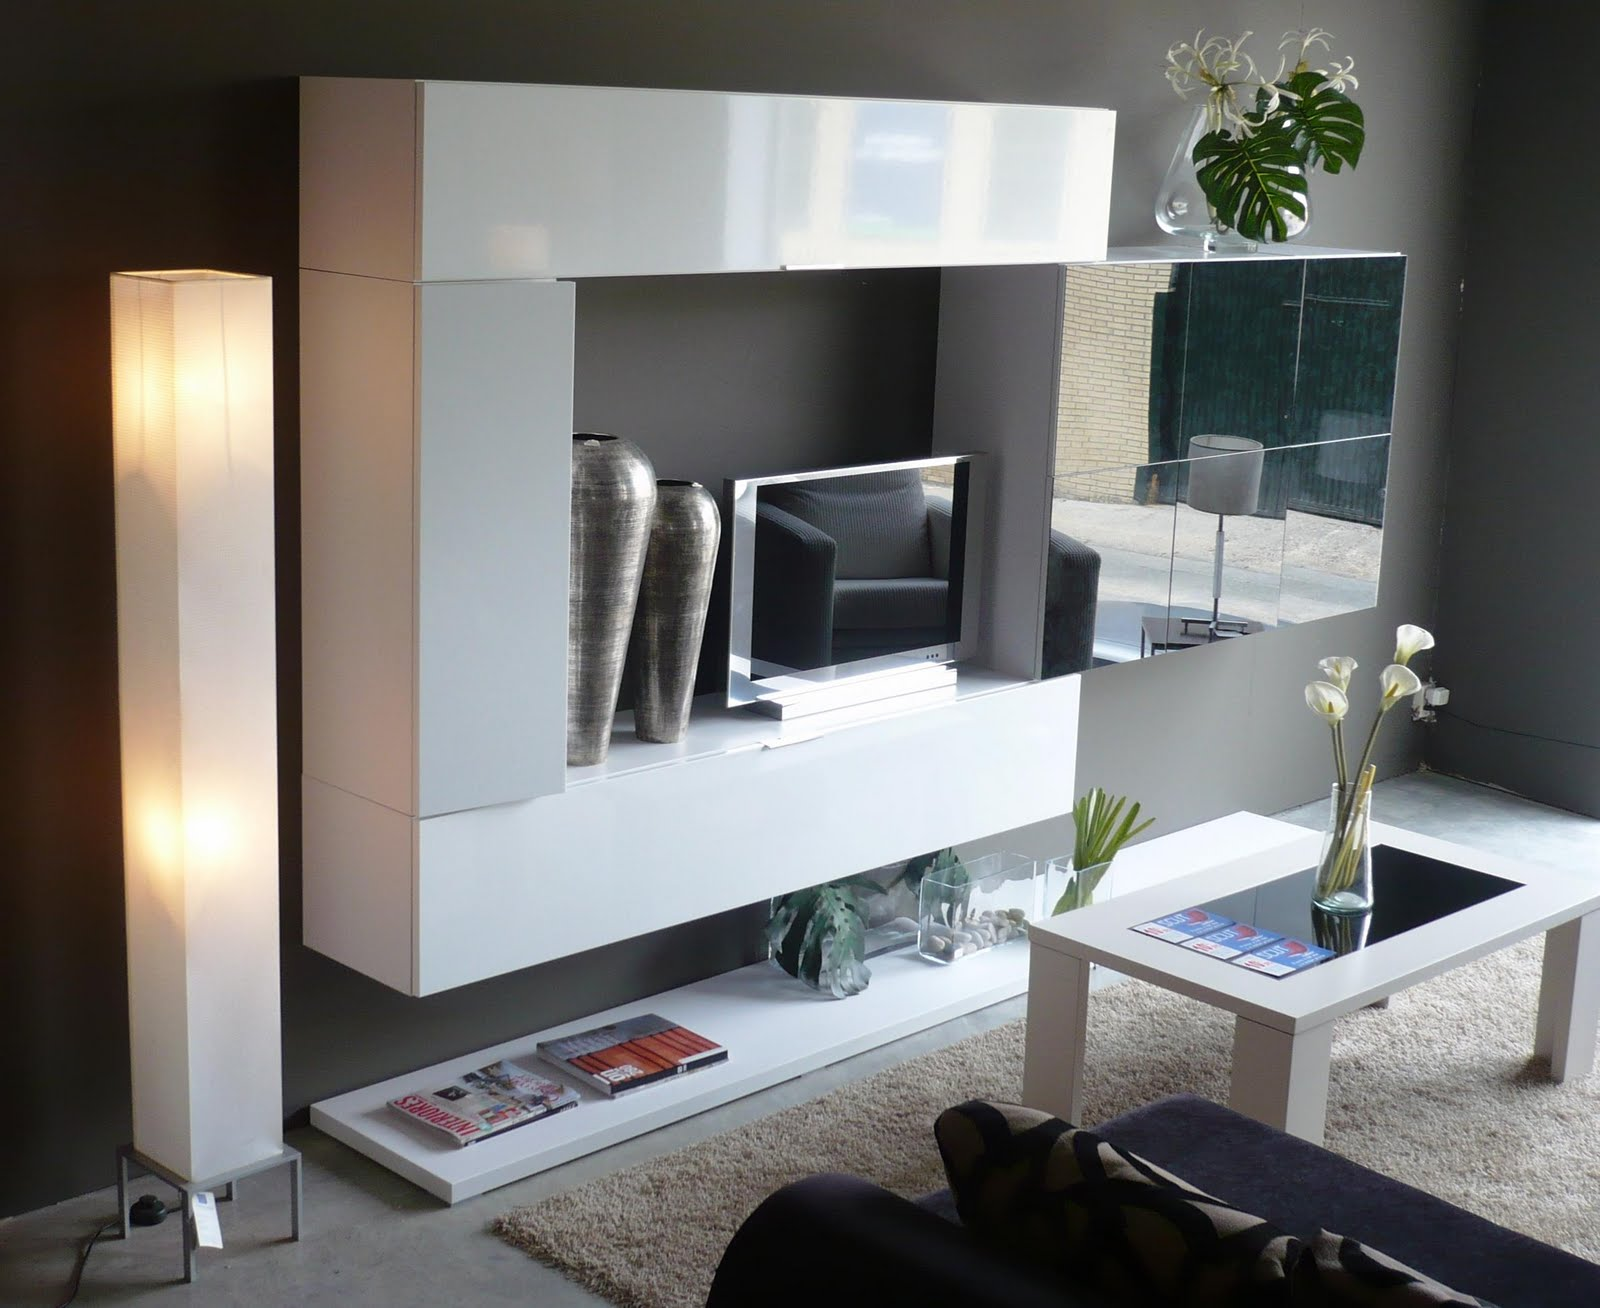 Muebles modernos ideas designs of home and garden for Muebles modulares modernos